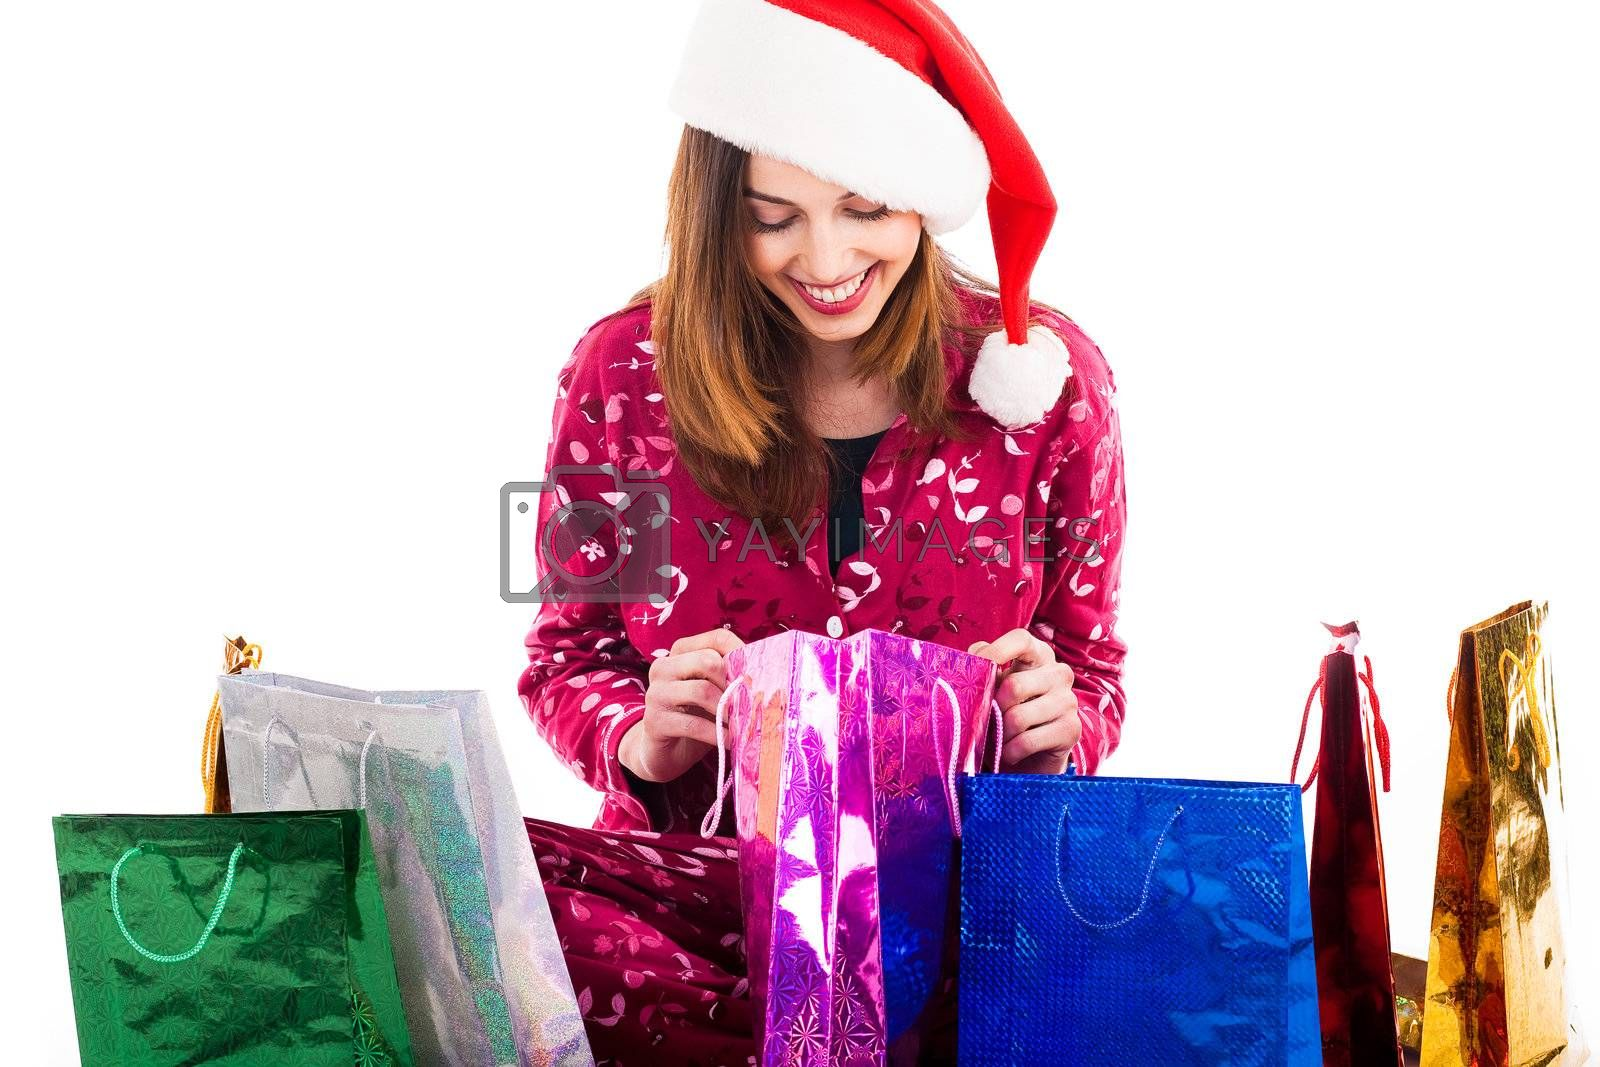 Young girl with santa cap checking into her shopping bags on a isolated white background